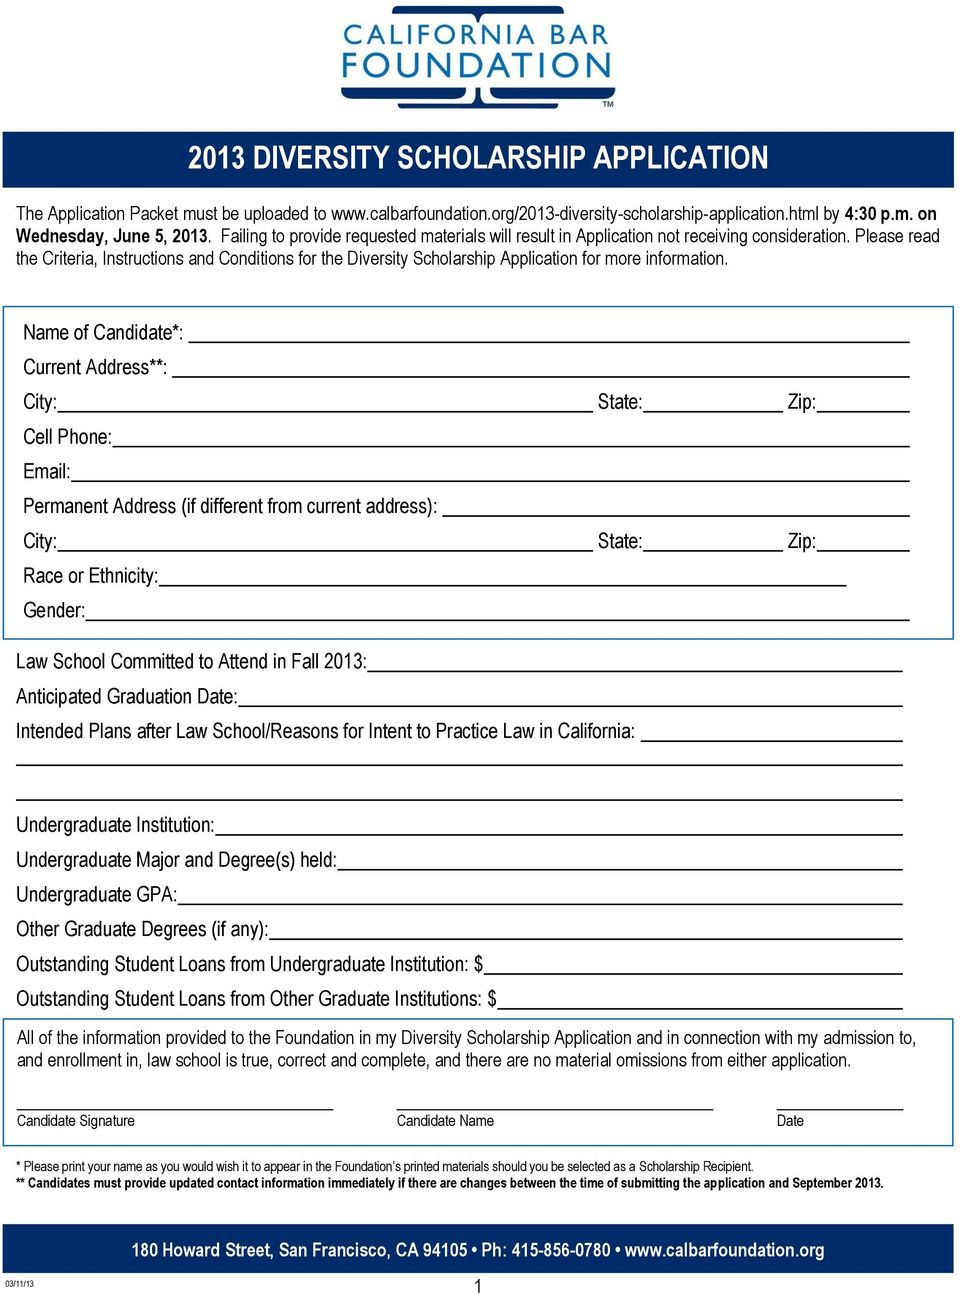 Please read the Criteria, Instructions and Conditions for the Diversity Scholarship Application for more information.